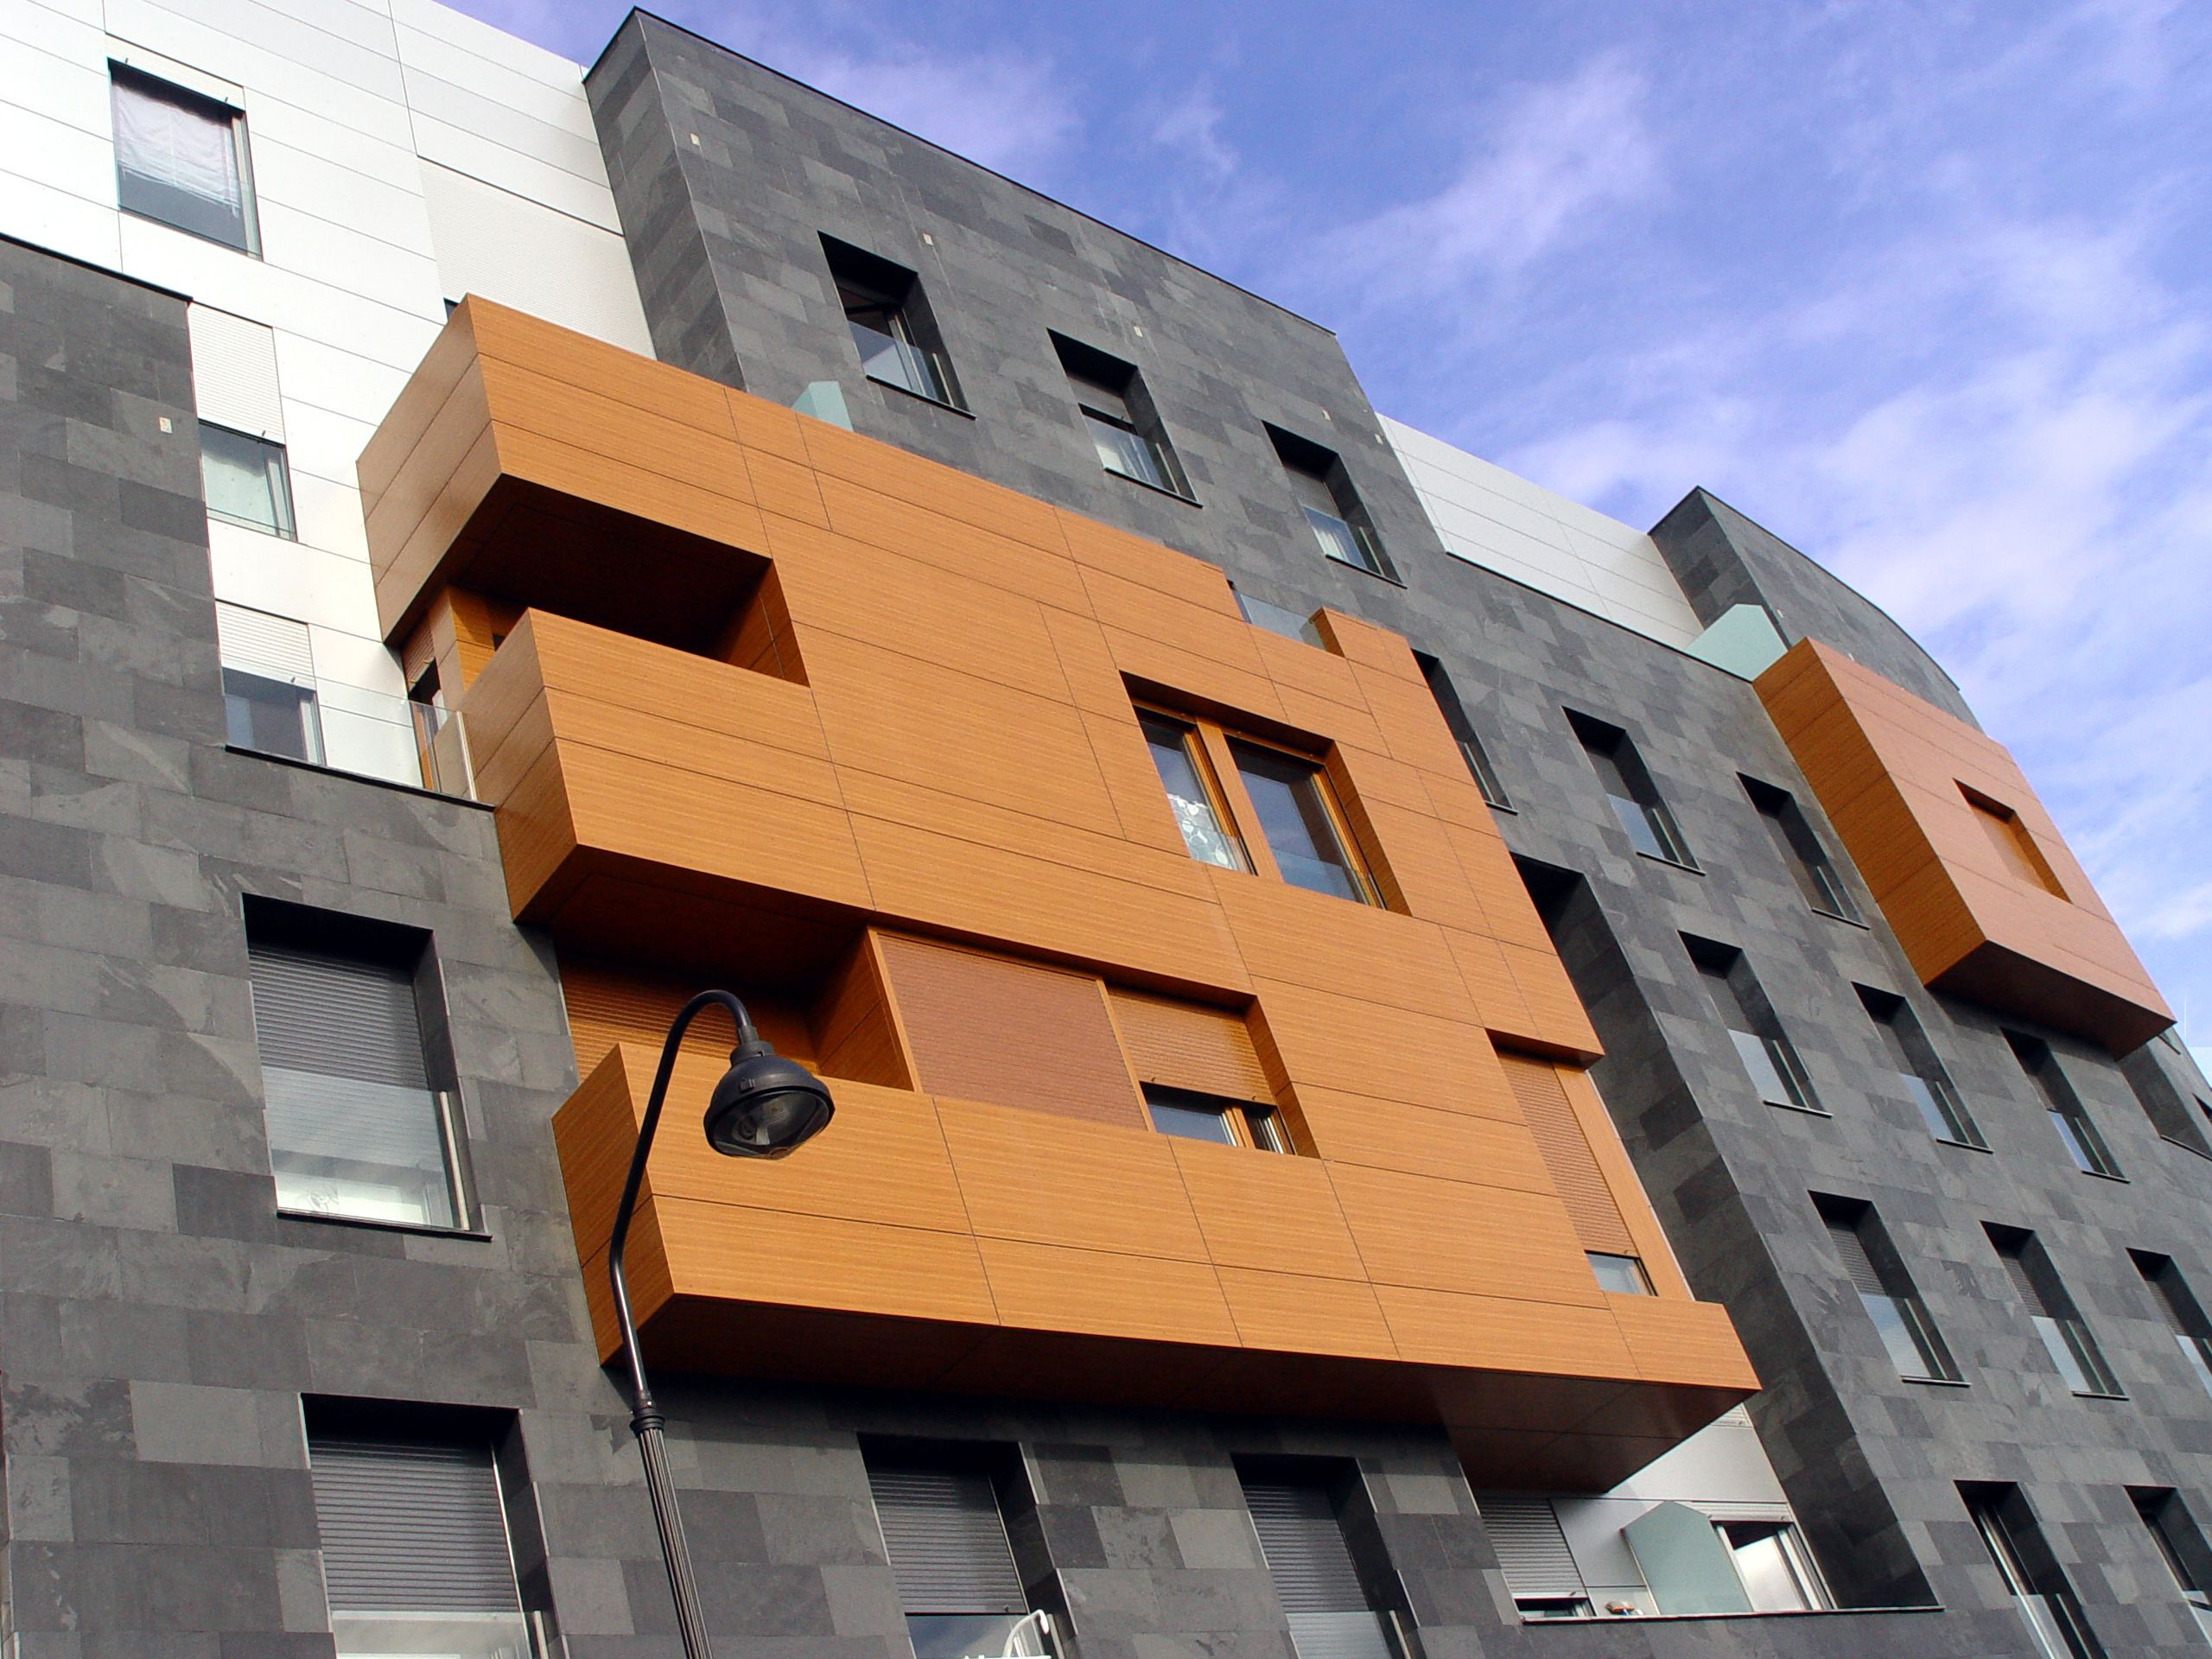 Pin By Cindy Yang On Aluminum Composite Panel Alucobond Cladding Cladding Paneling